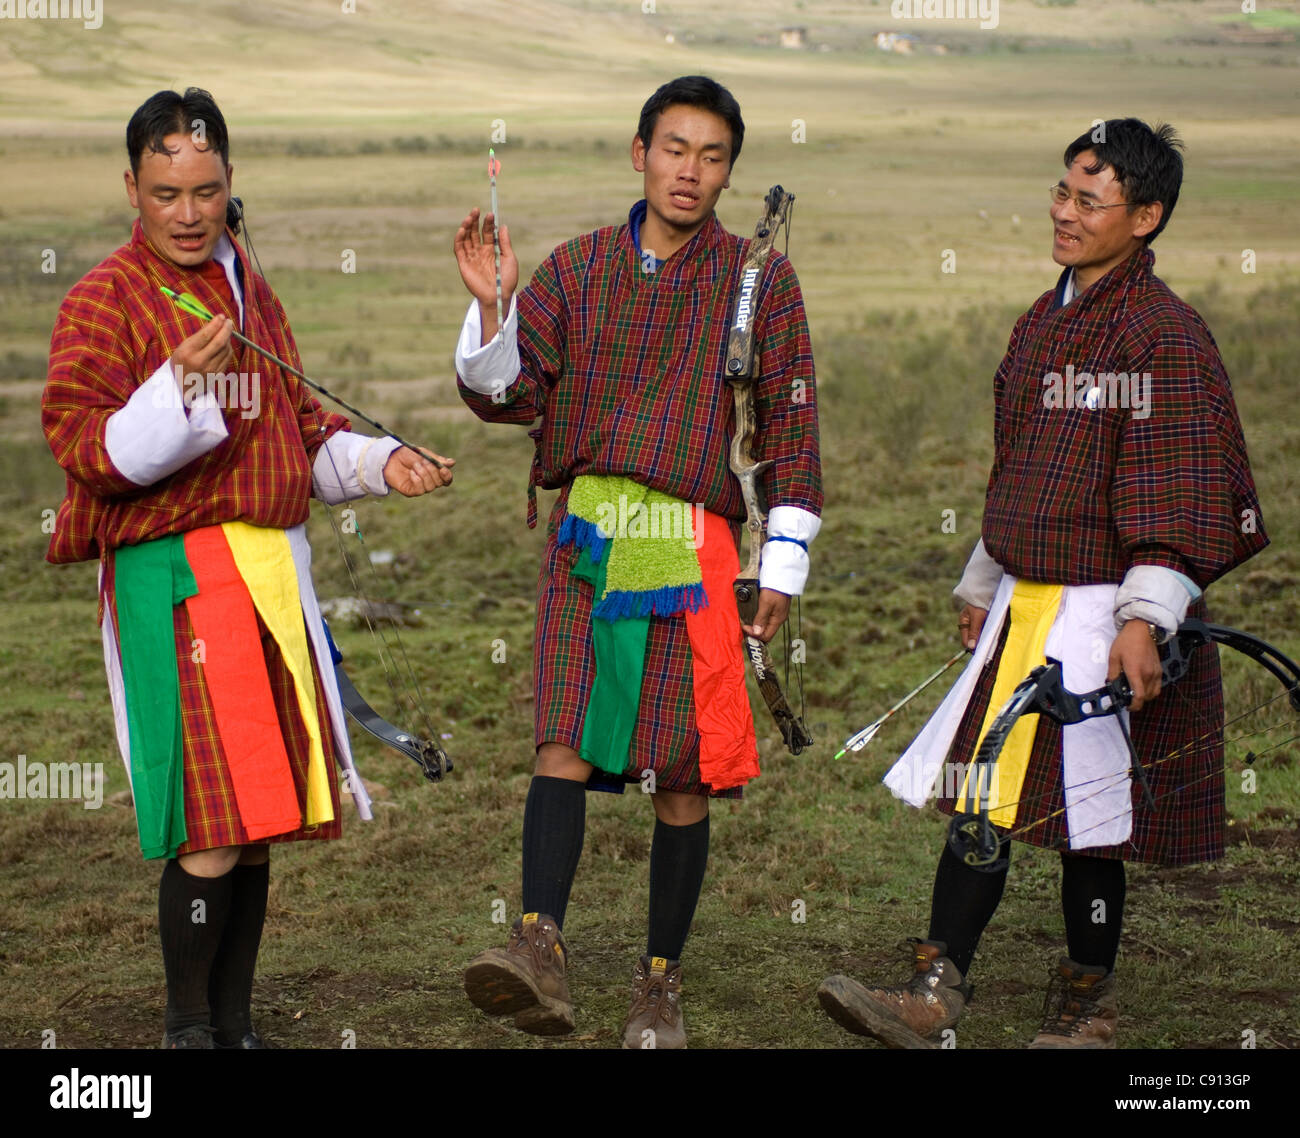 Whenever someone hits the target, members of the team in an inter-village archery contest in Bhutan do a song and - Stock Image